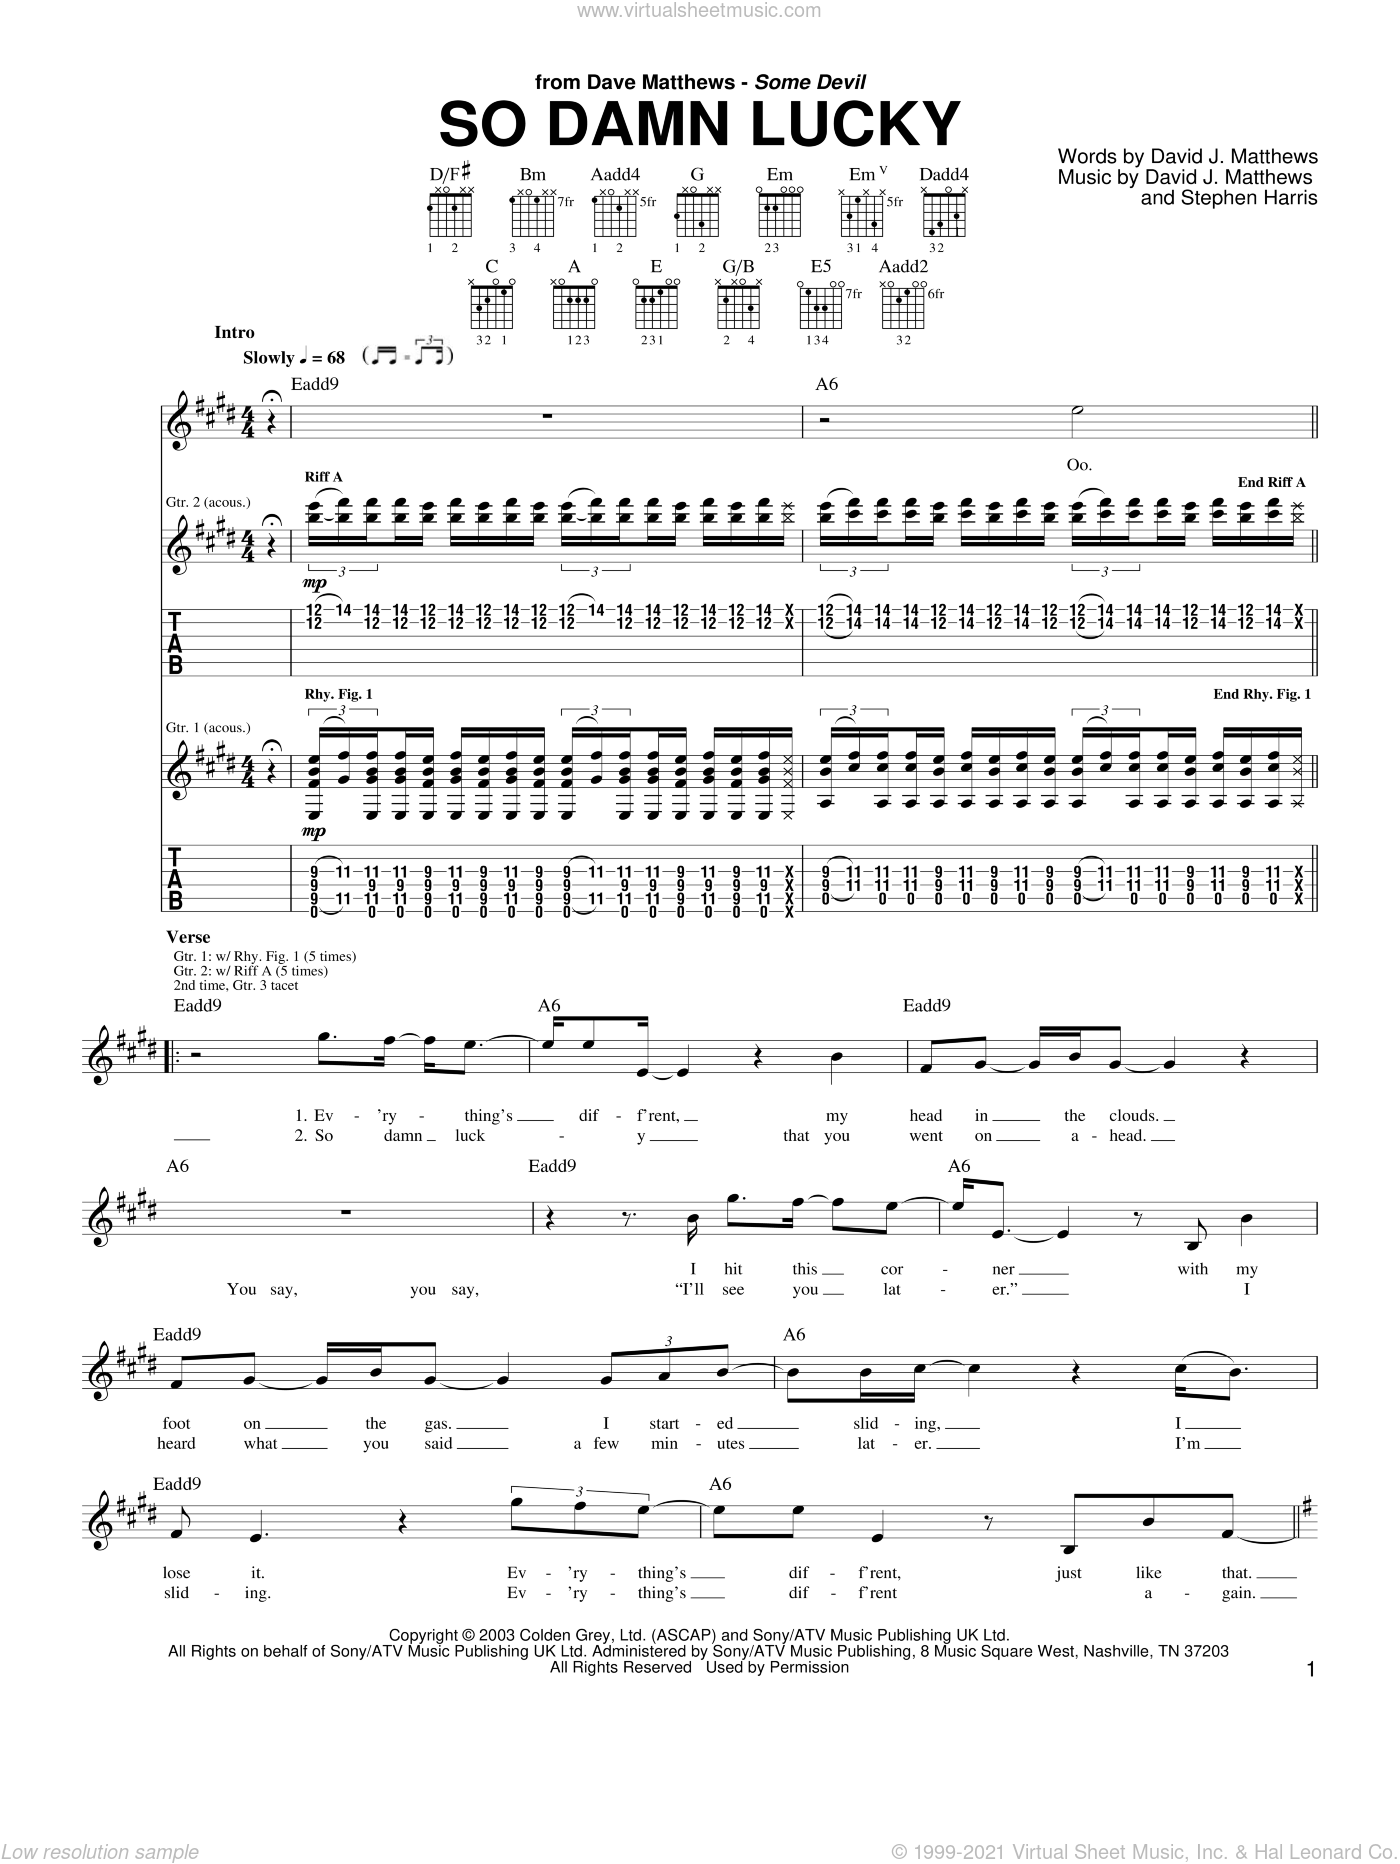 So Damn Lucky sheet music for guitar (tablature) by Steve Harris, Dave Matthews and David Matthews. Score Image Preview.